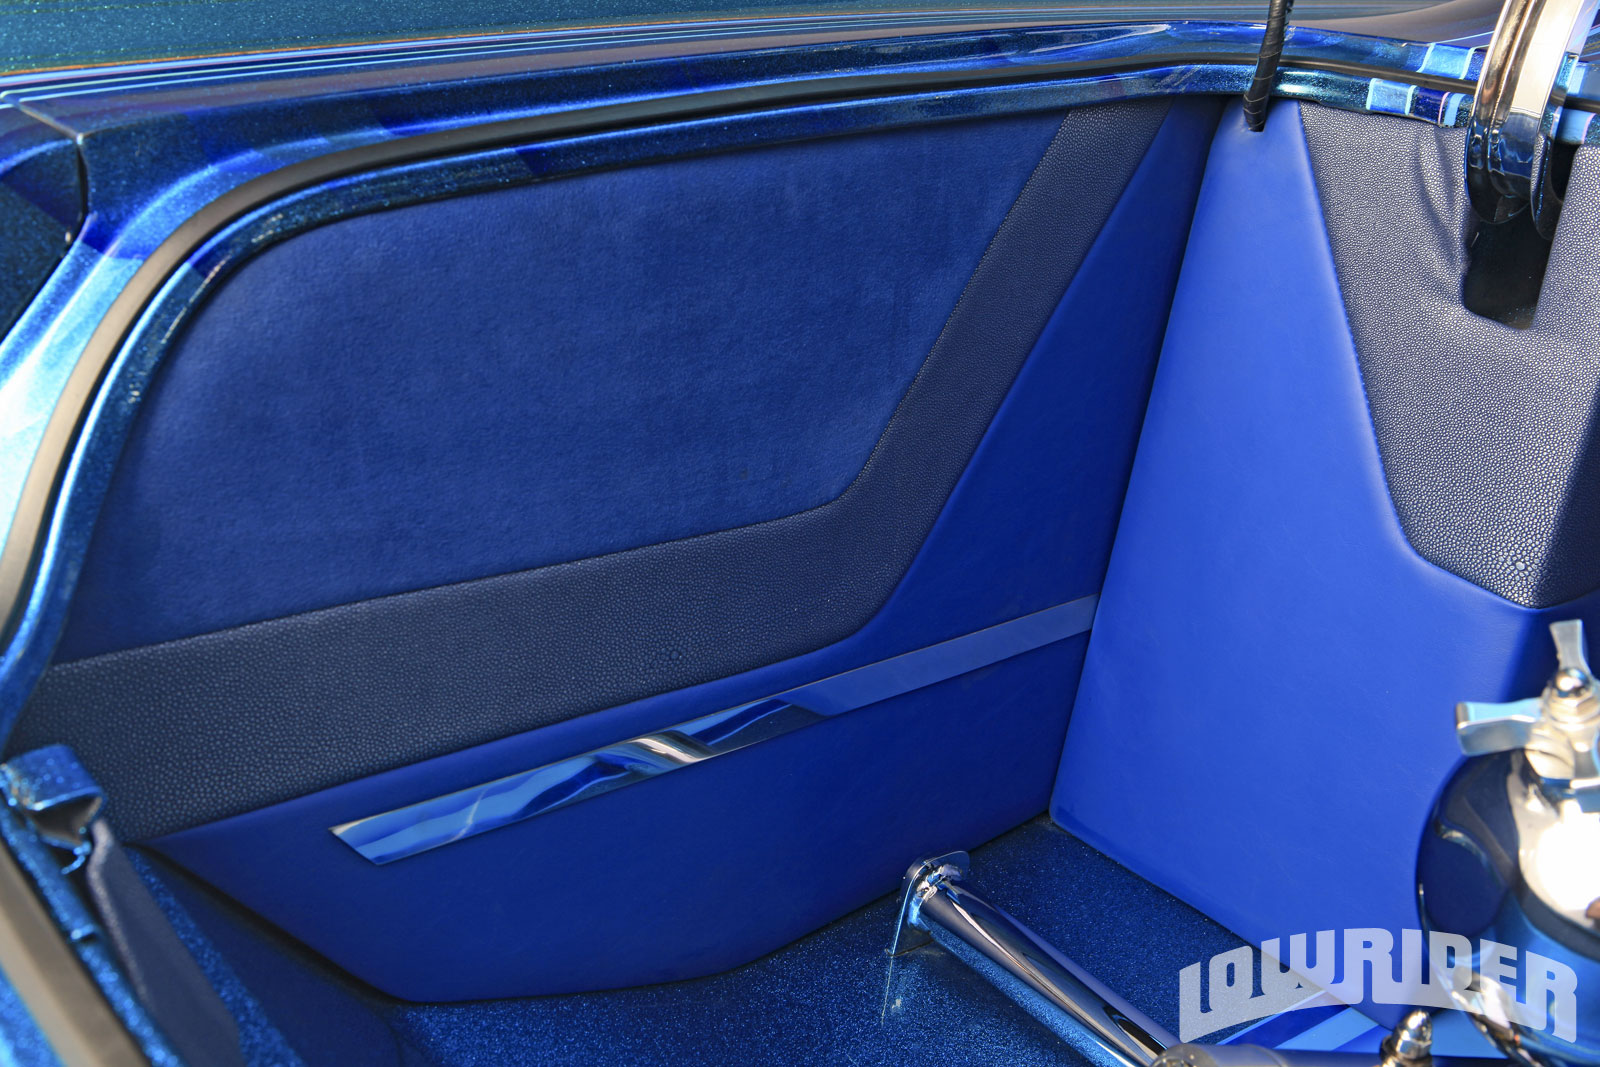 Chevrolet Impala Gas Tank together with Lrmp O Chevrolet Impala Impala Rear Left Side View as well Lrmp O Chevrolet Impala besides Chevrolet Impala Driver Side View also Lrmp Z Chevrolet Impala Convertible Steering Wheel. on 1961 impala lowrider magazine